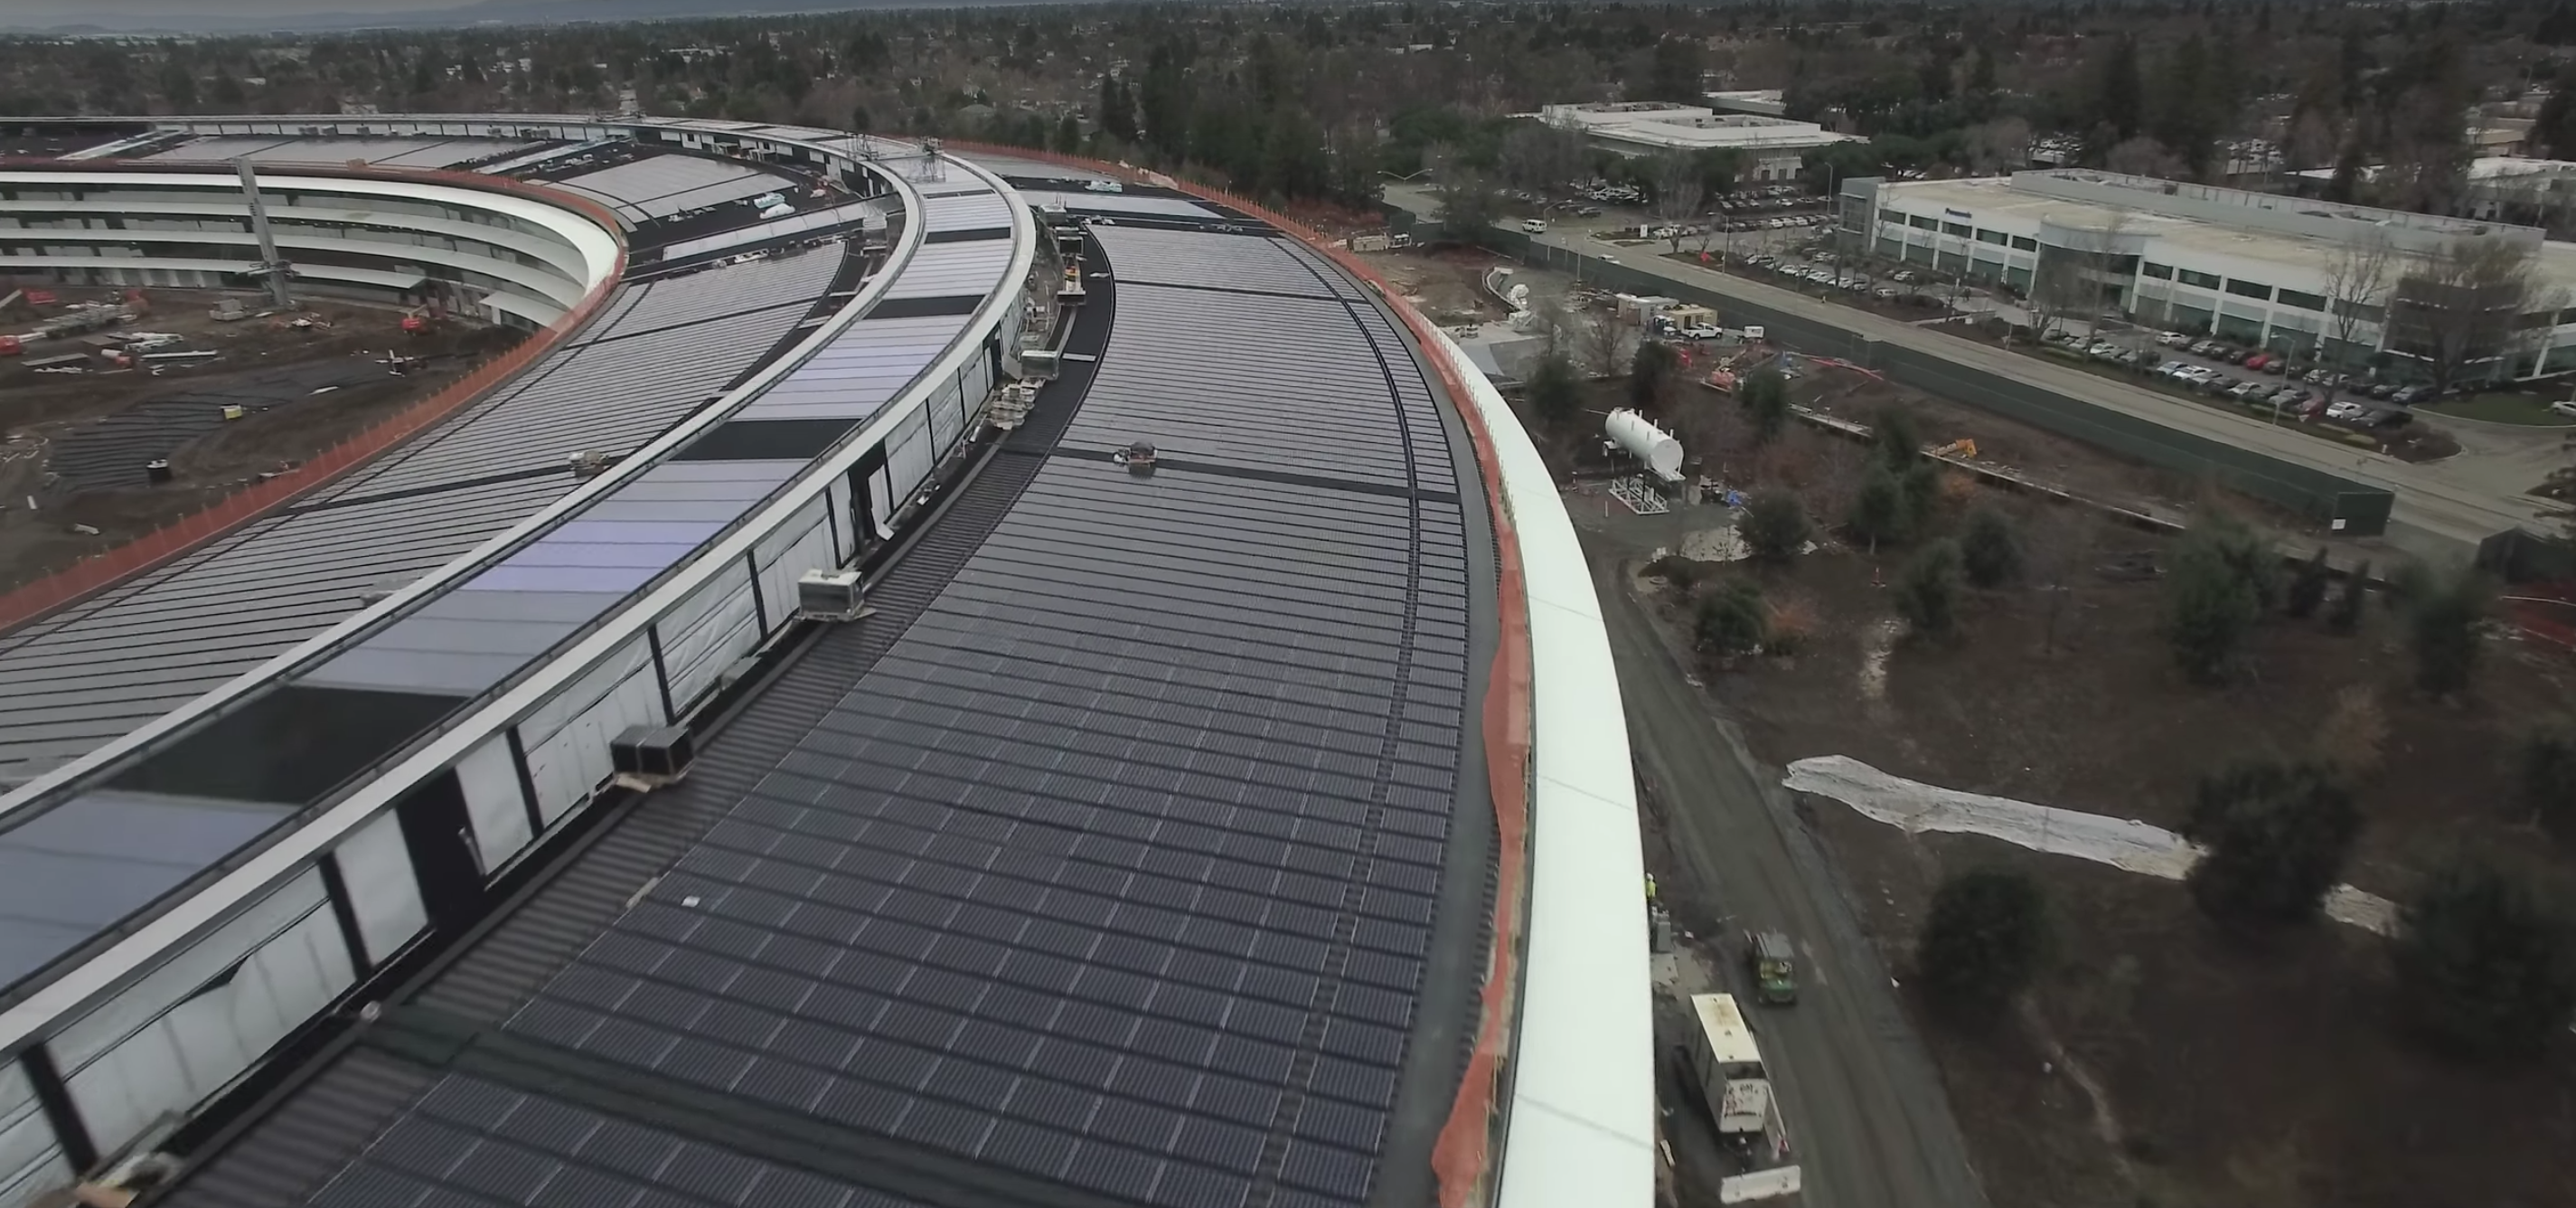 Solar panels have been installed on the roof.  Apple Campus 2 is expected to be 100 percent powered by renewable energy.